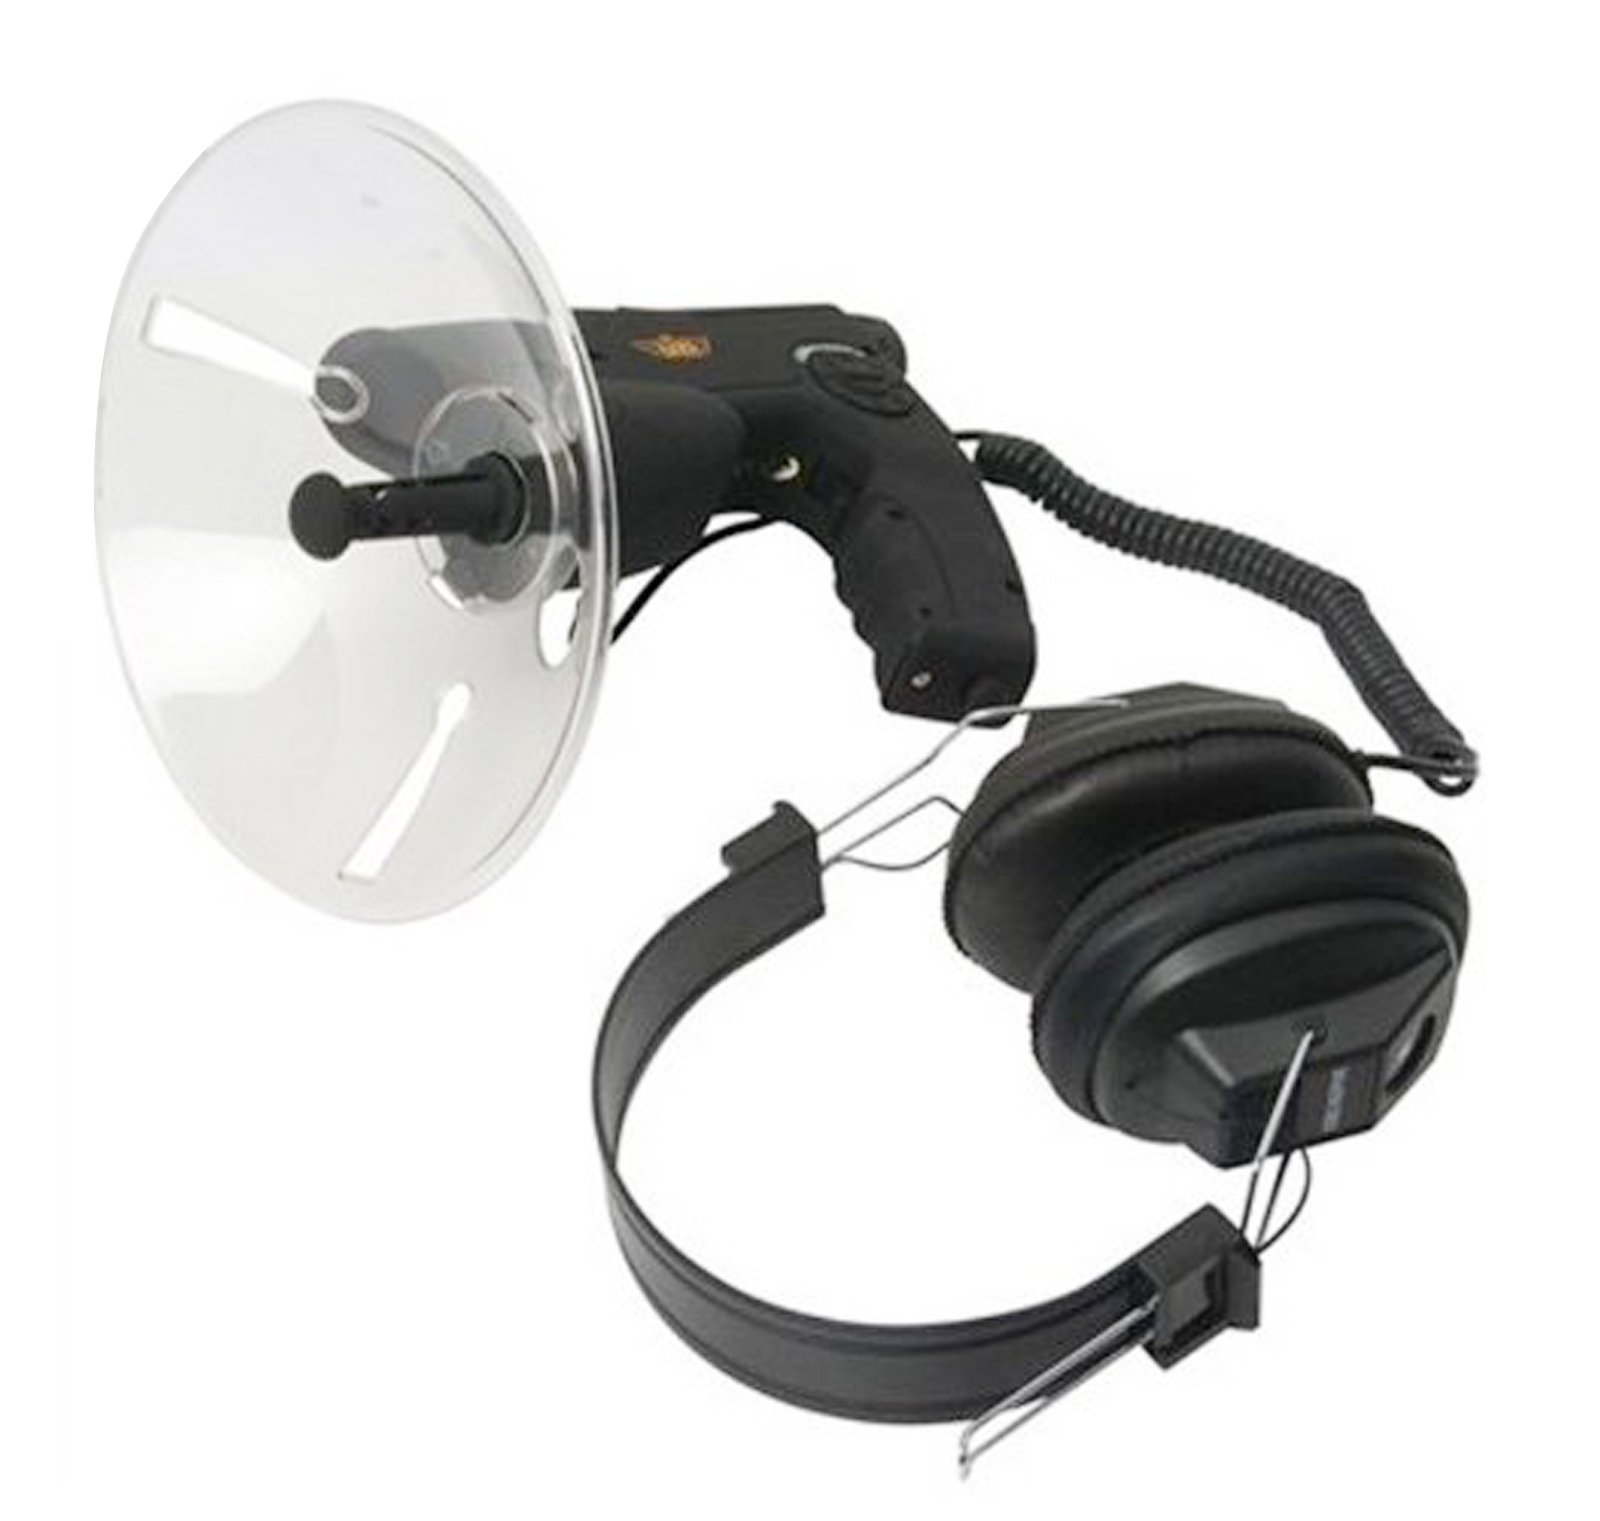 CampCo Uzi Uzi-OD-1 Observation Listening Device with 300-Foot Range and Noise Reduction Black